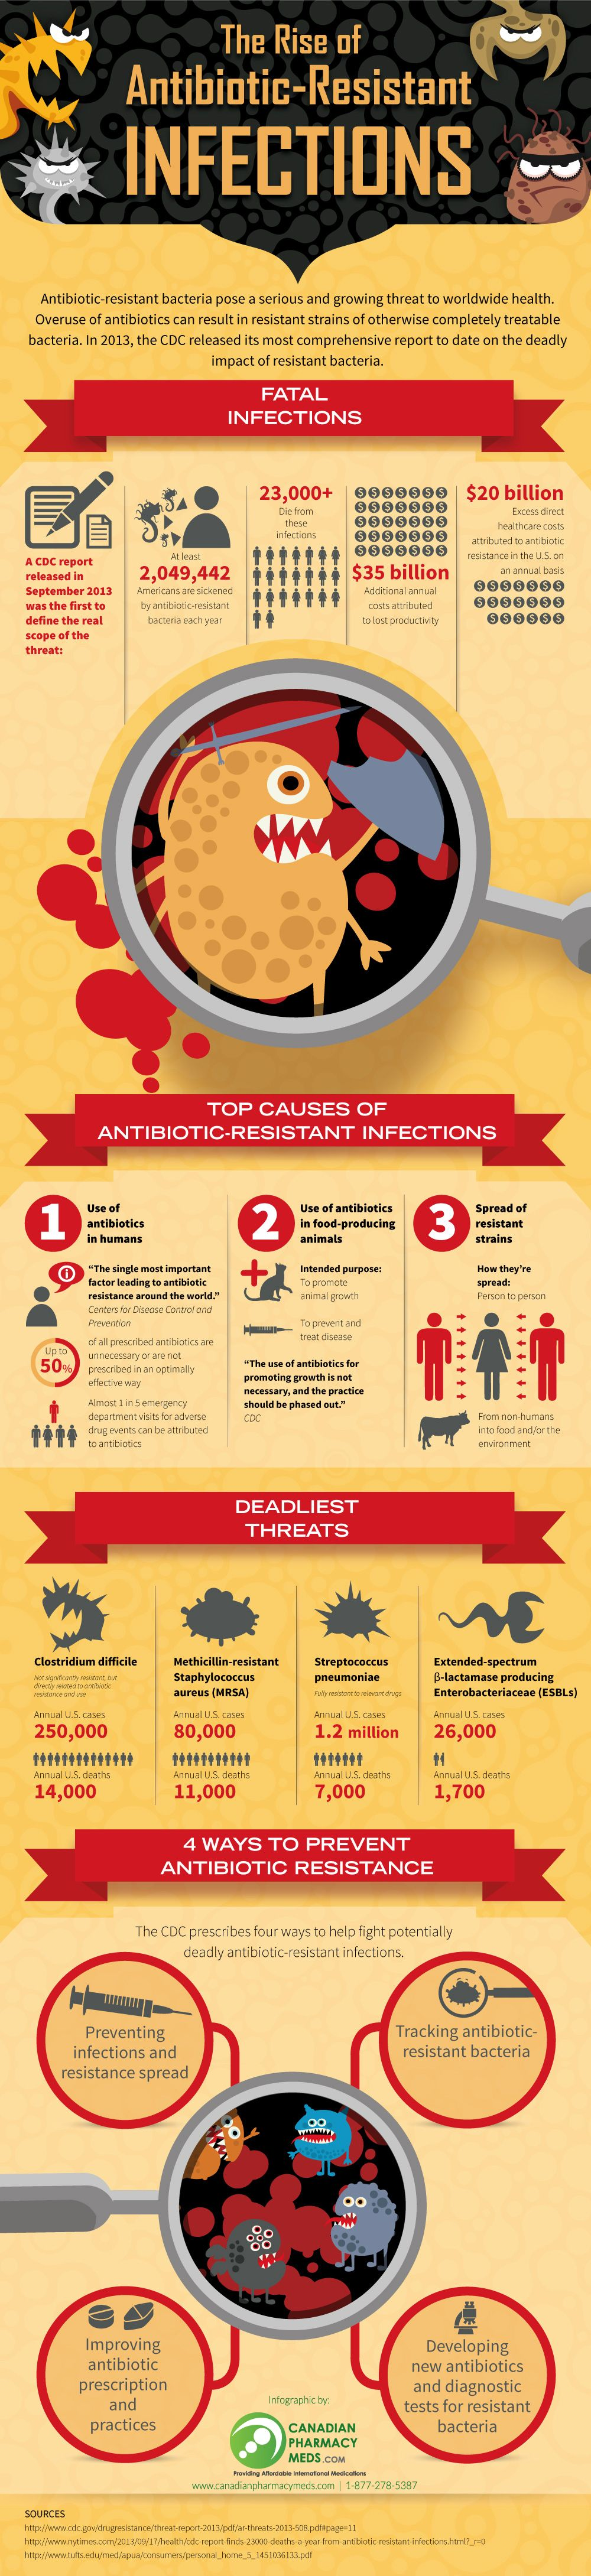 the rise of antibiotic resistant infections education the rise of antibiotic resistant infections